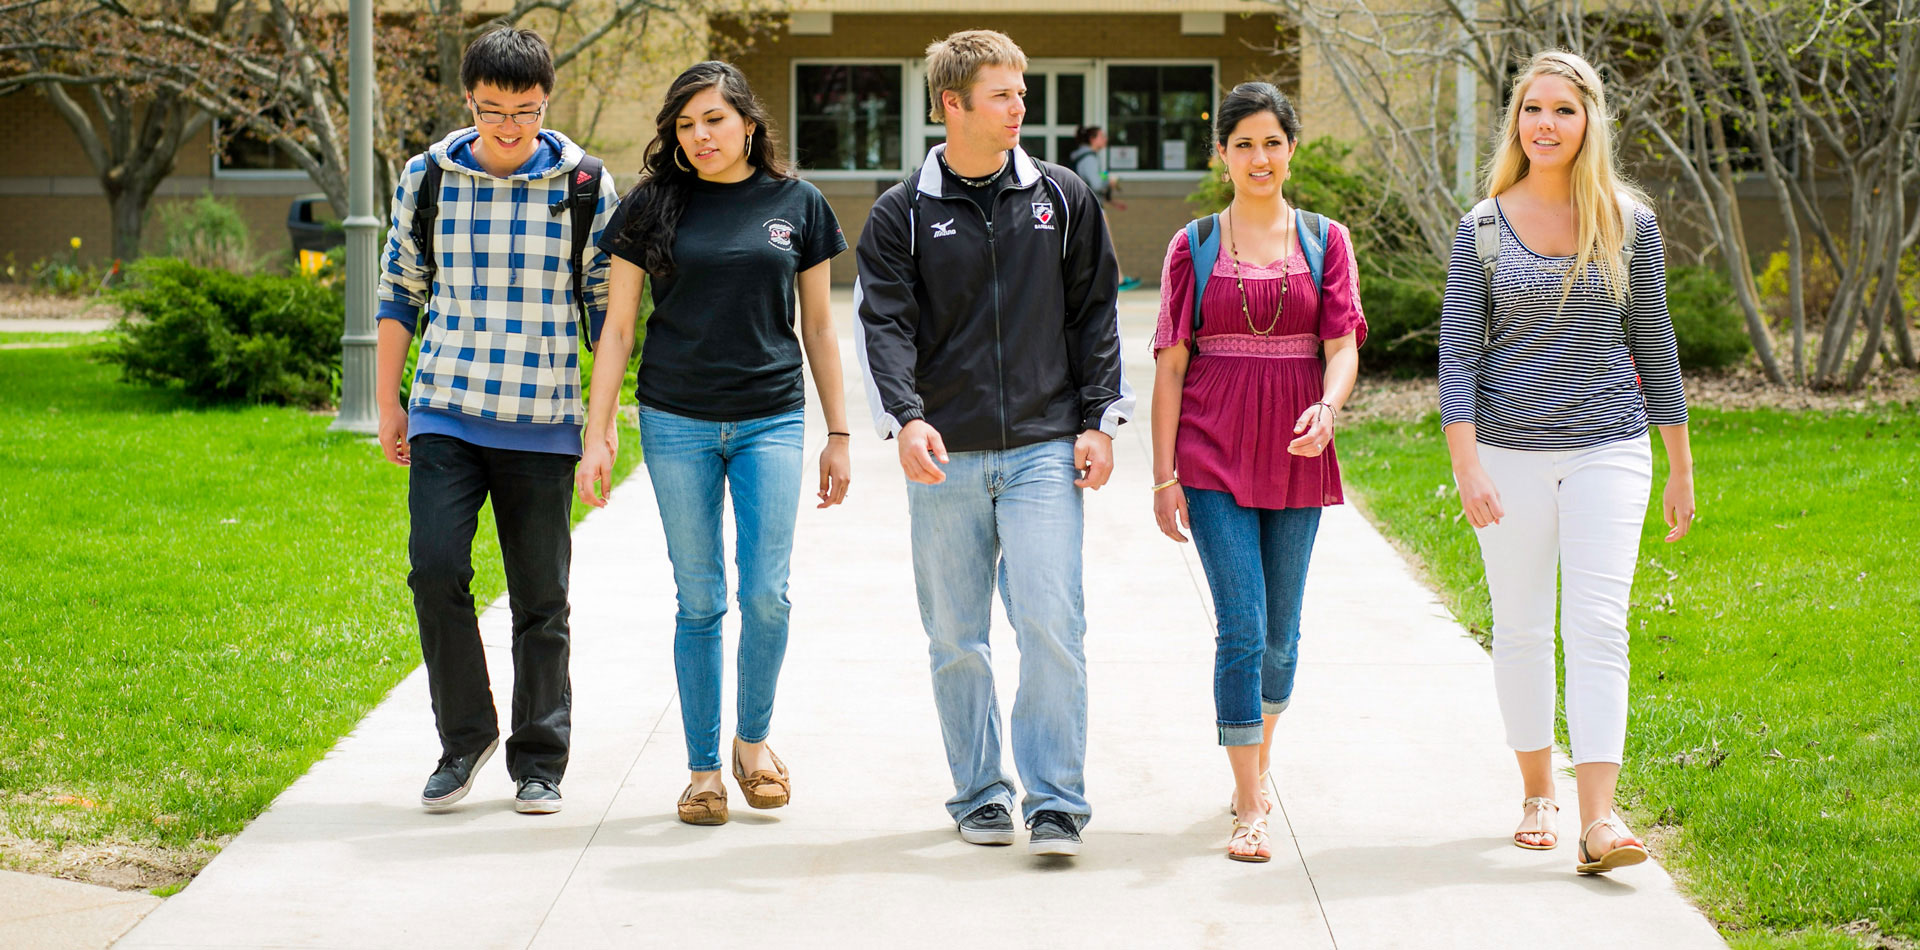 Undergrad students walking in front of the library.